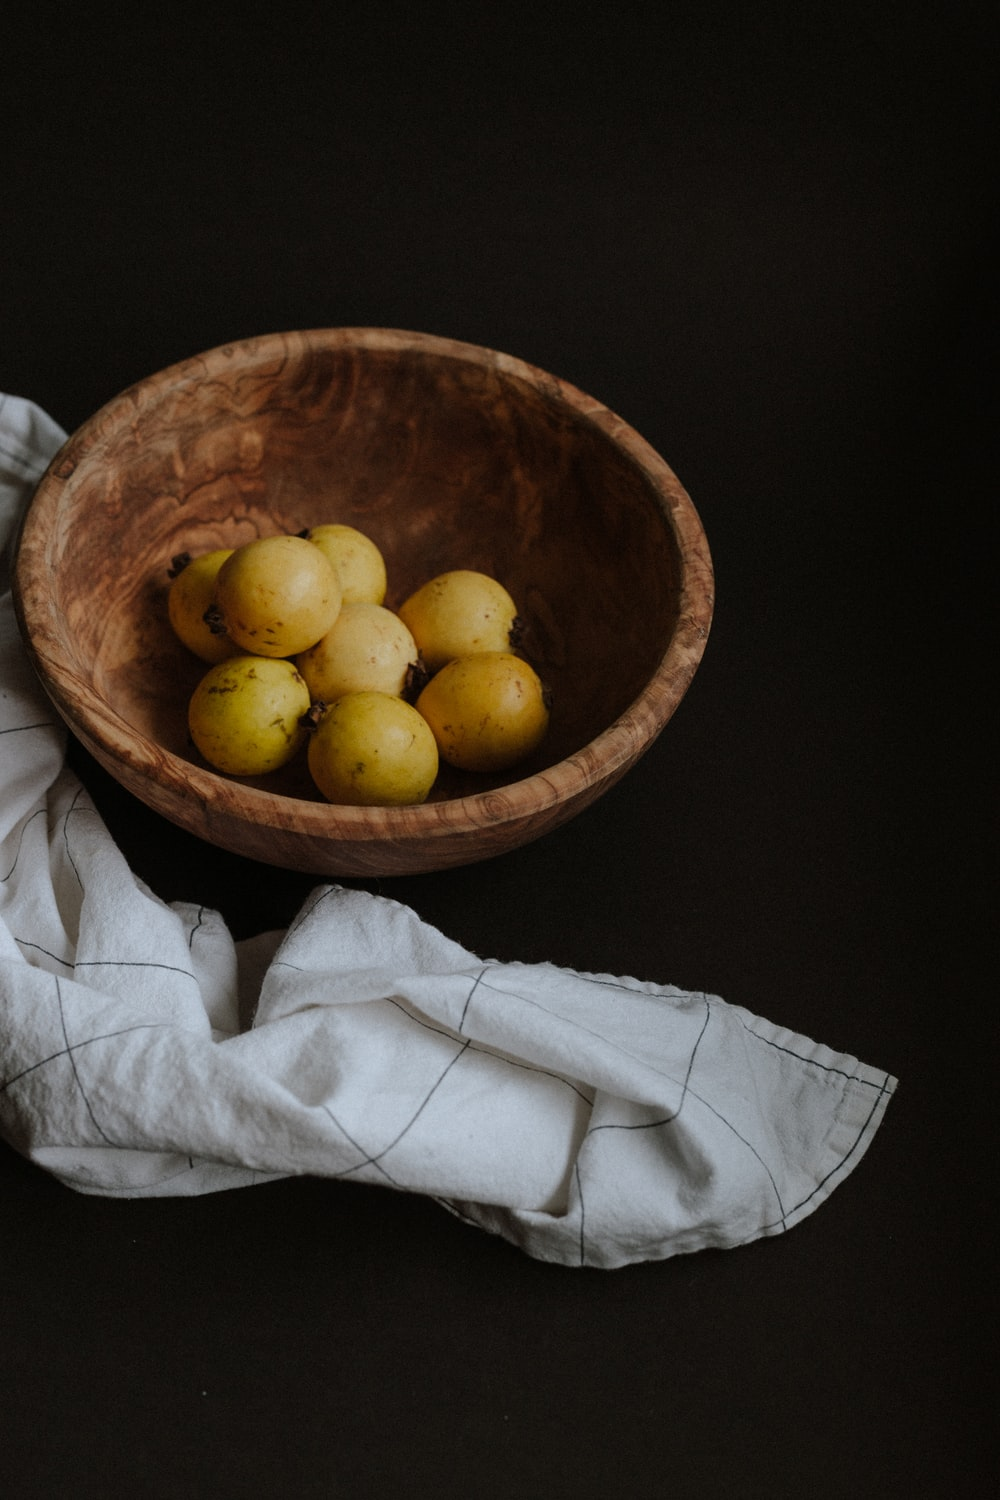 yellow round fruits on brown wooden bowl